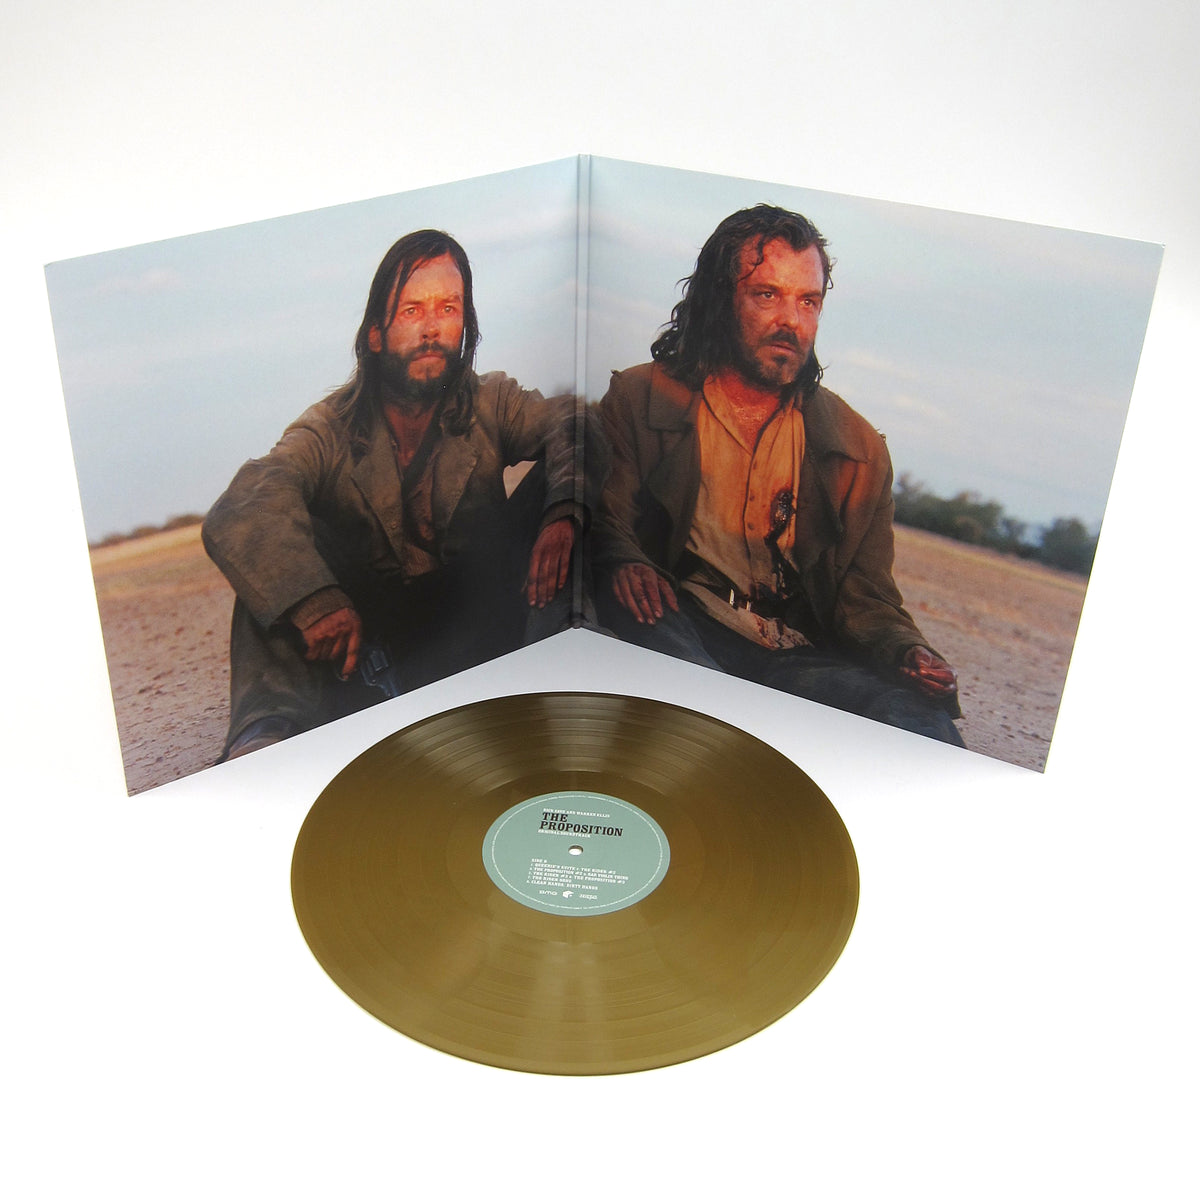 Nick Cave & Warren Ellis: The Proposition Soundtrack (Colored Vinyl) Vinyl LP